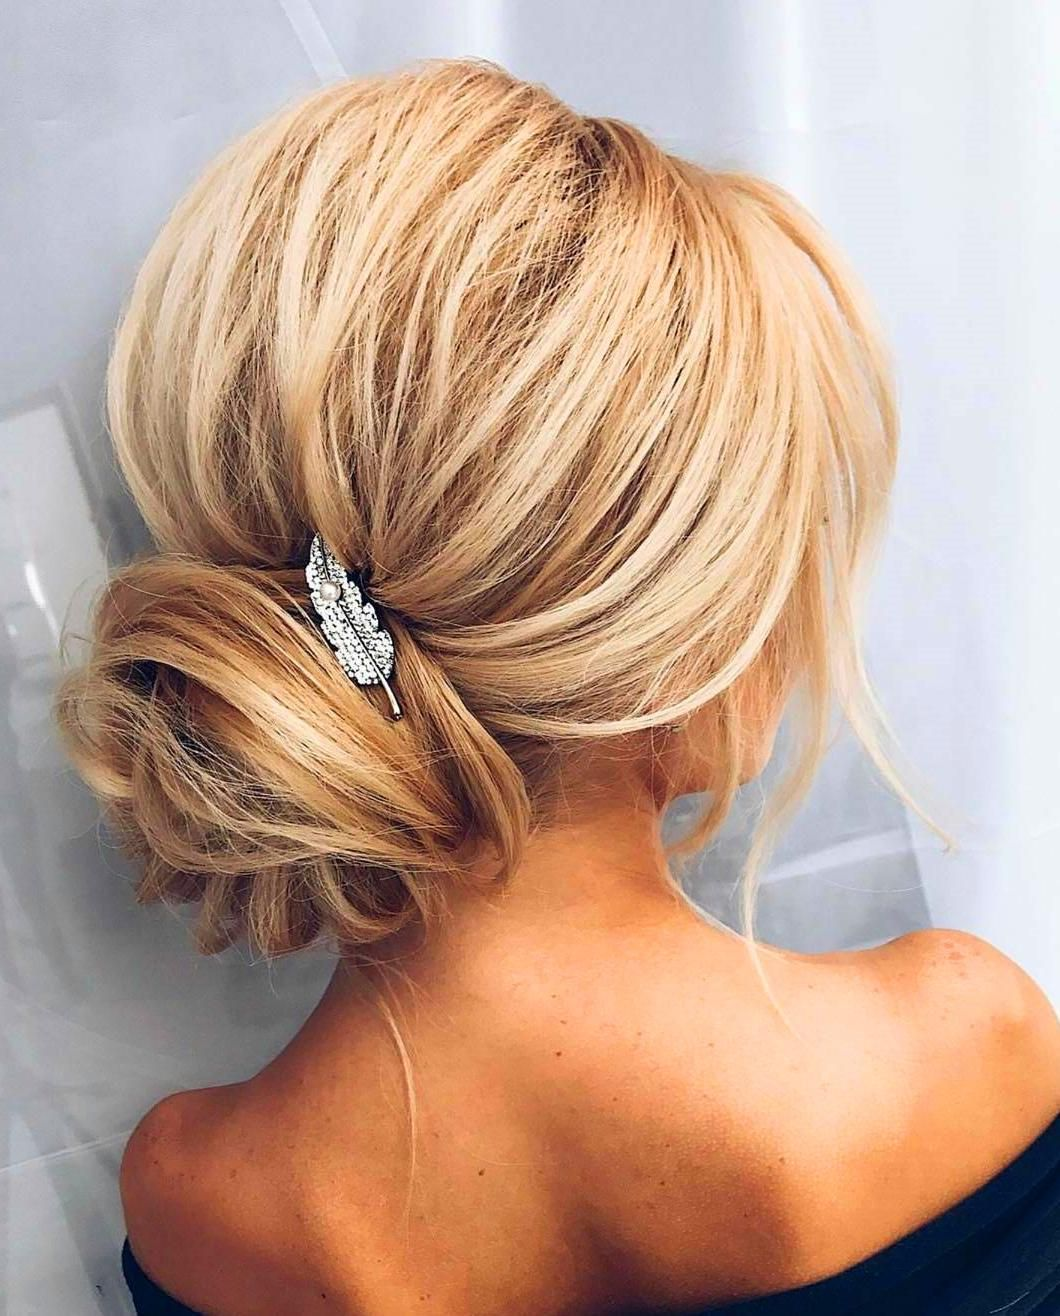 50 Wedding Hair Styles You Ll Love Bridesmaid Hair Updo Hair Hair Styles